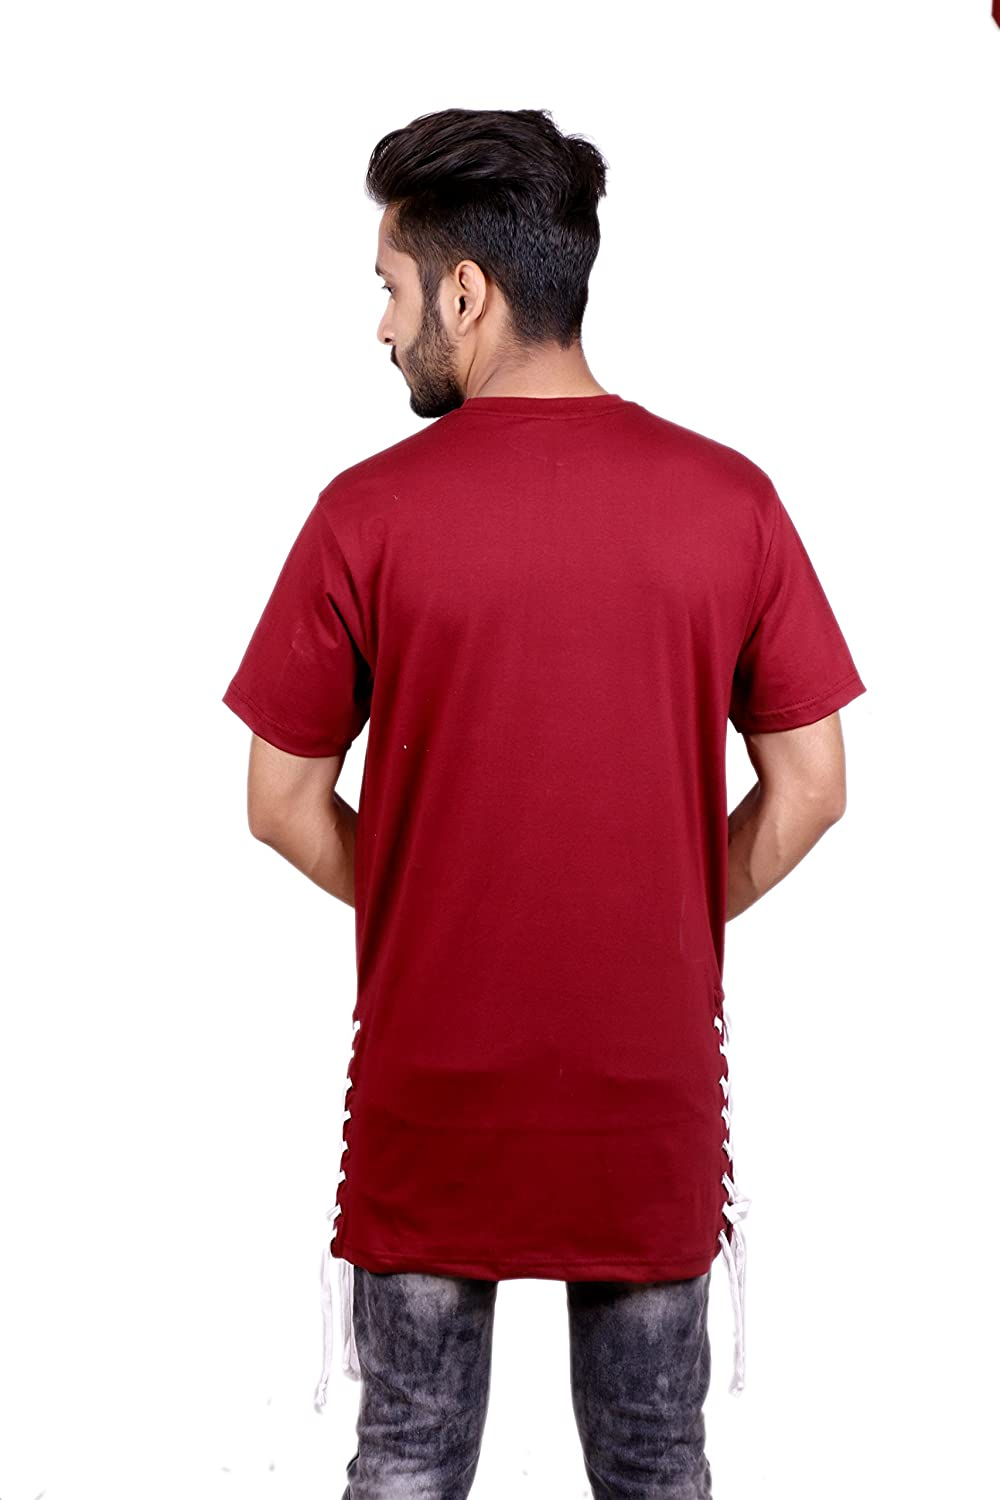 Swaggy Wears Eyelets Lace up Longline Premium Cotton Maroon T-Shirt